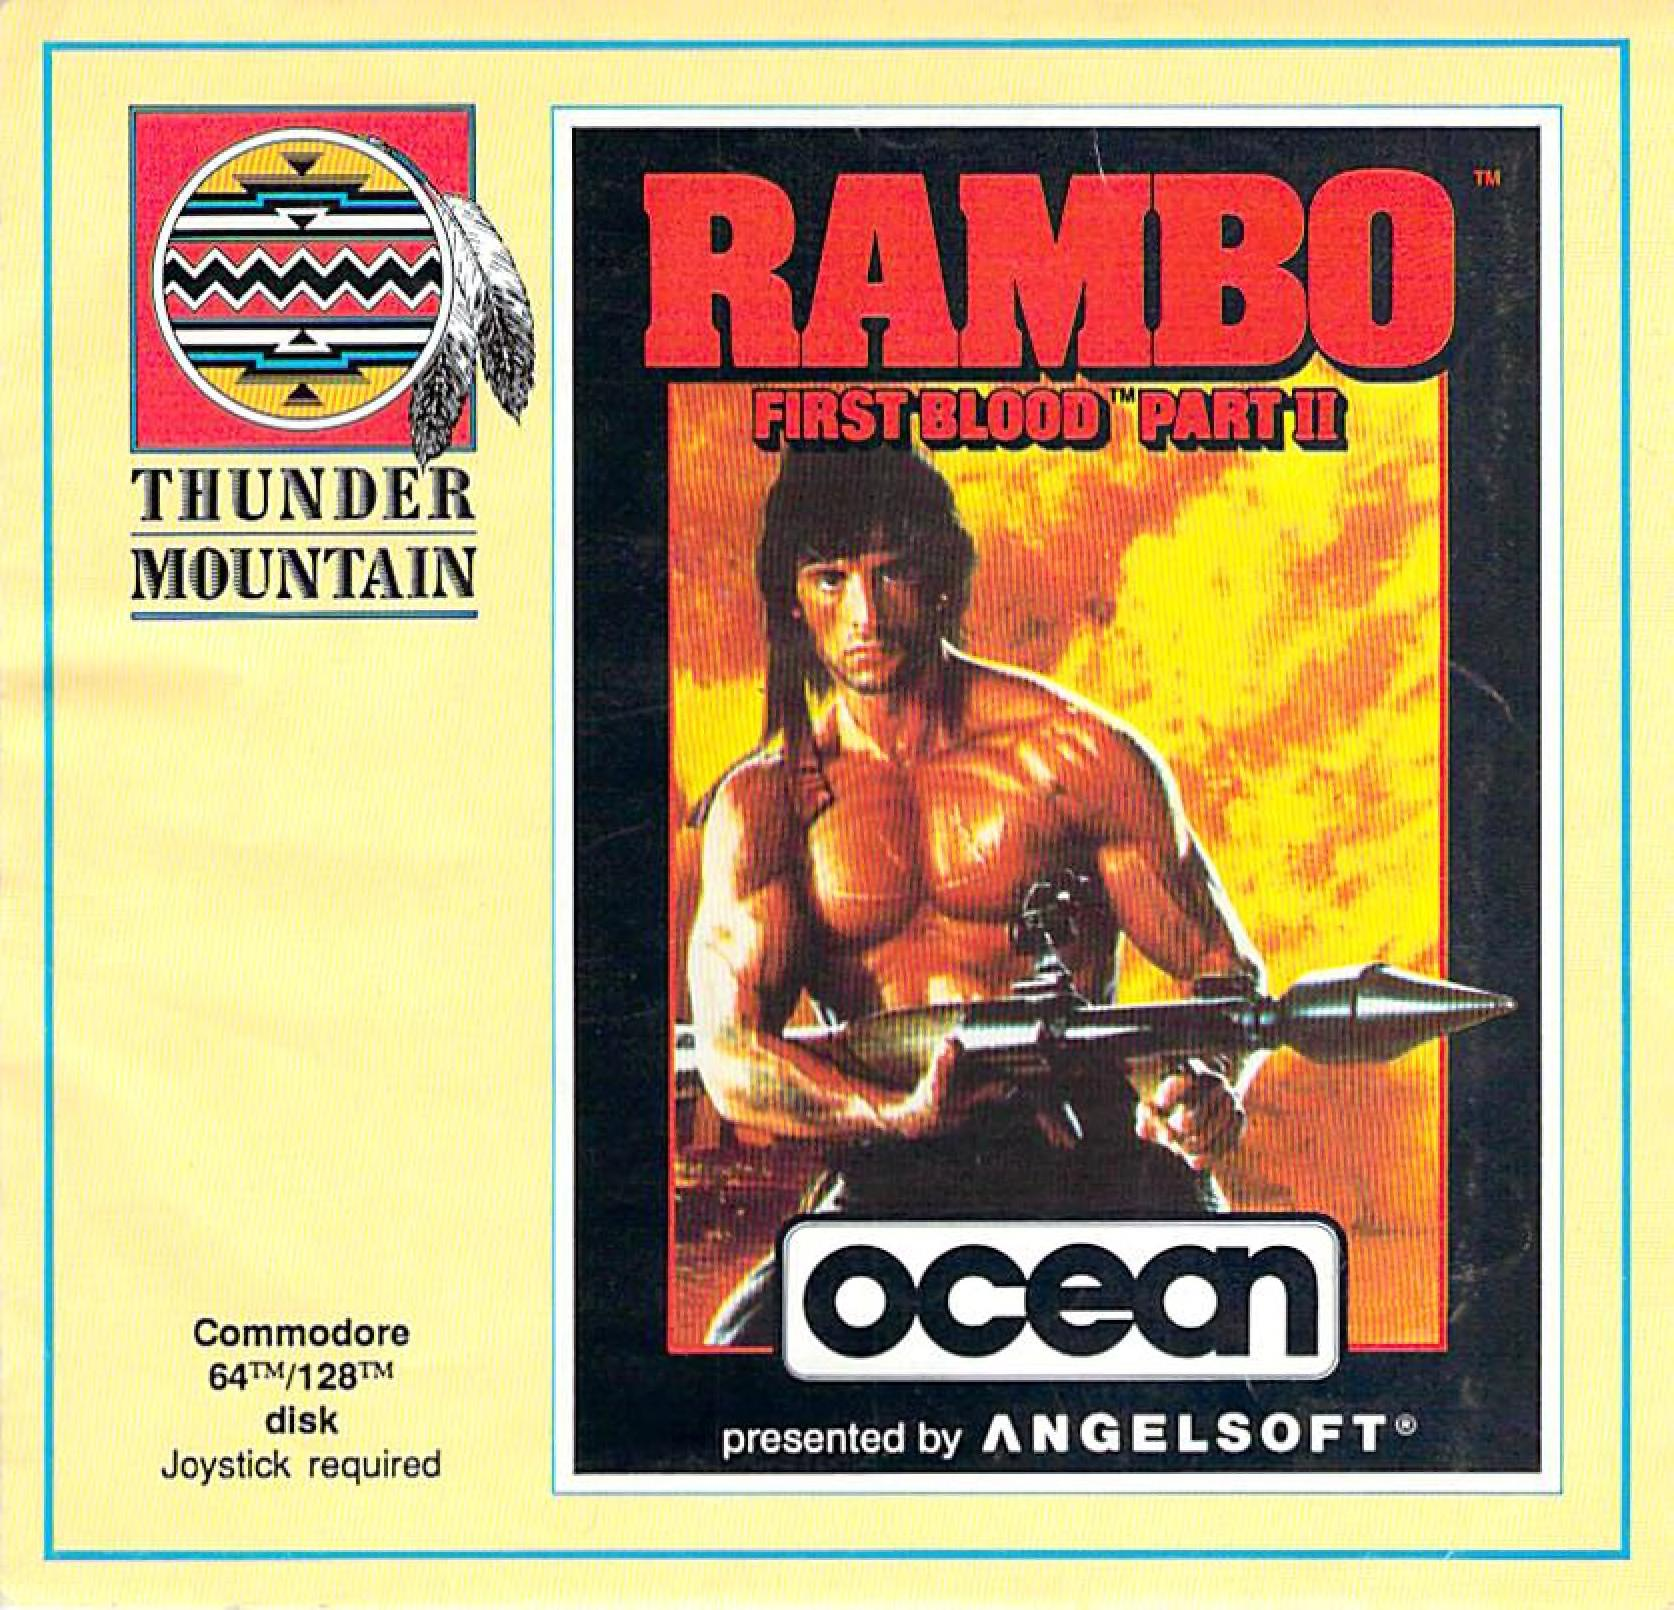 Commodore C64 Manual Rambo First Blood Part Ii 1985 Ocean Free Download Borrow And Streaming Internet Archive